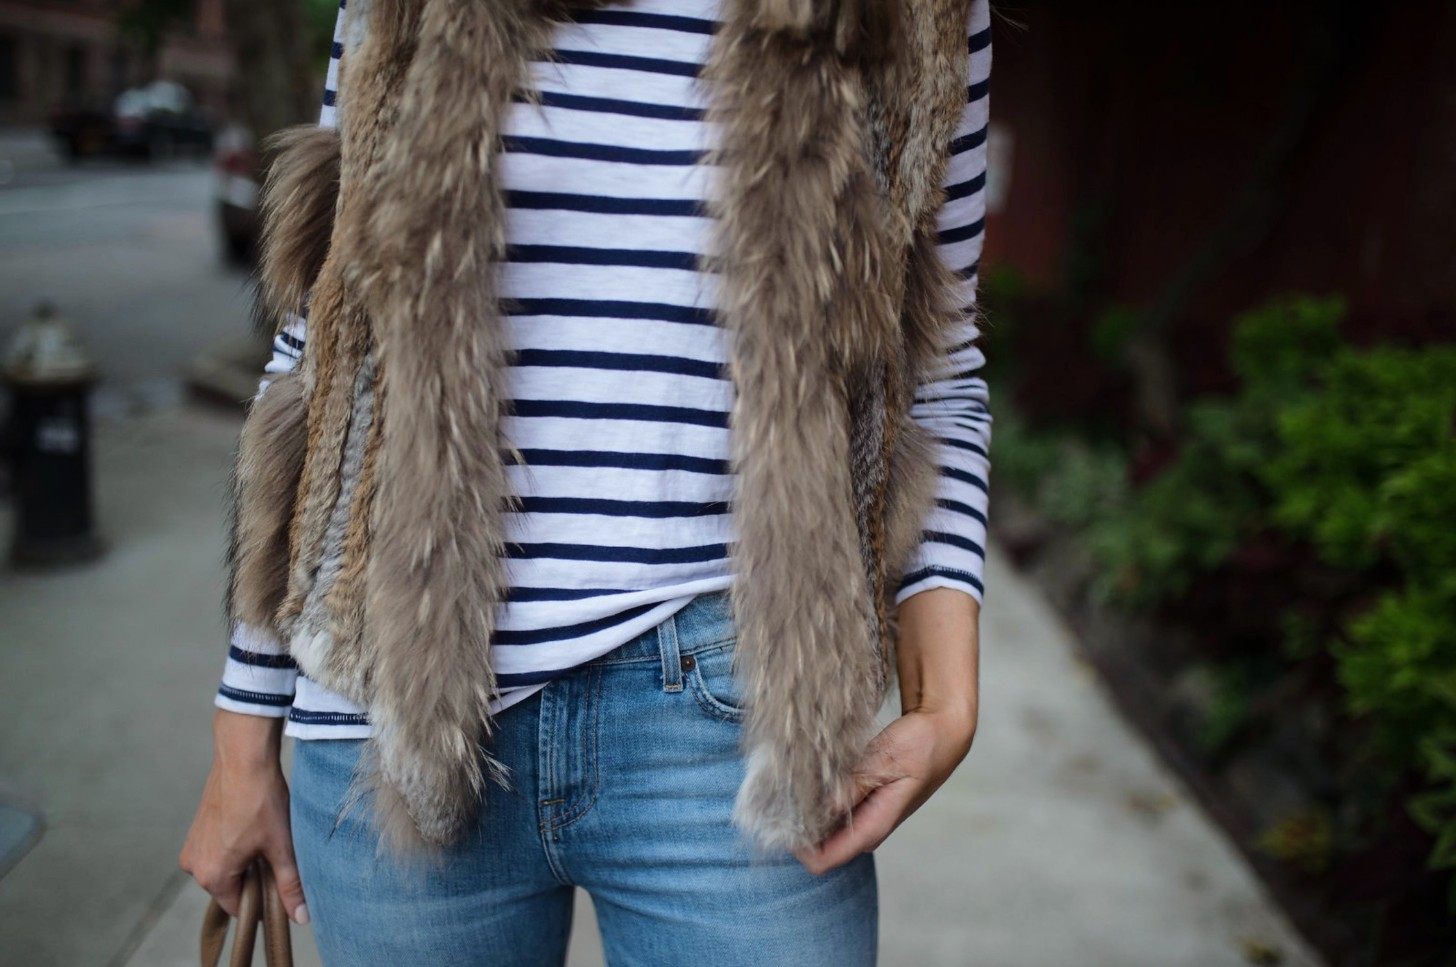 spring weekend outfit idea fur vest navy stripe jcrew top blue ripped jeans 7 for all mankind nude heels blog new york style elixir fashion blogger lauren slade 8